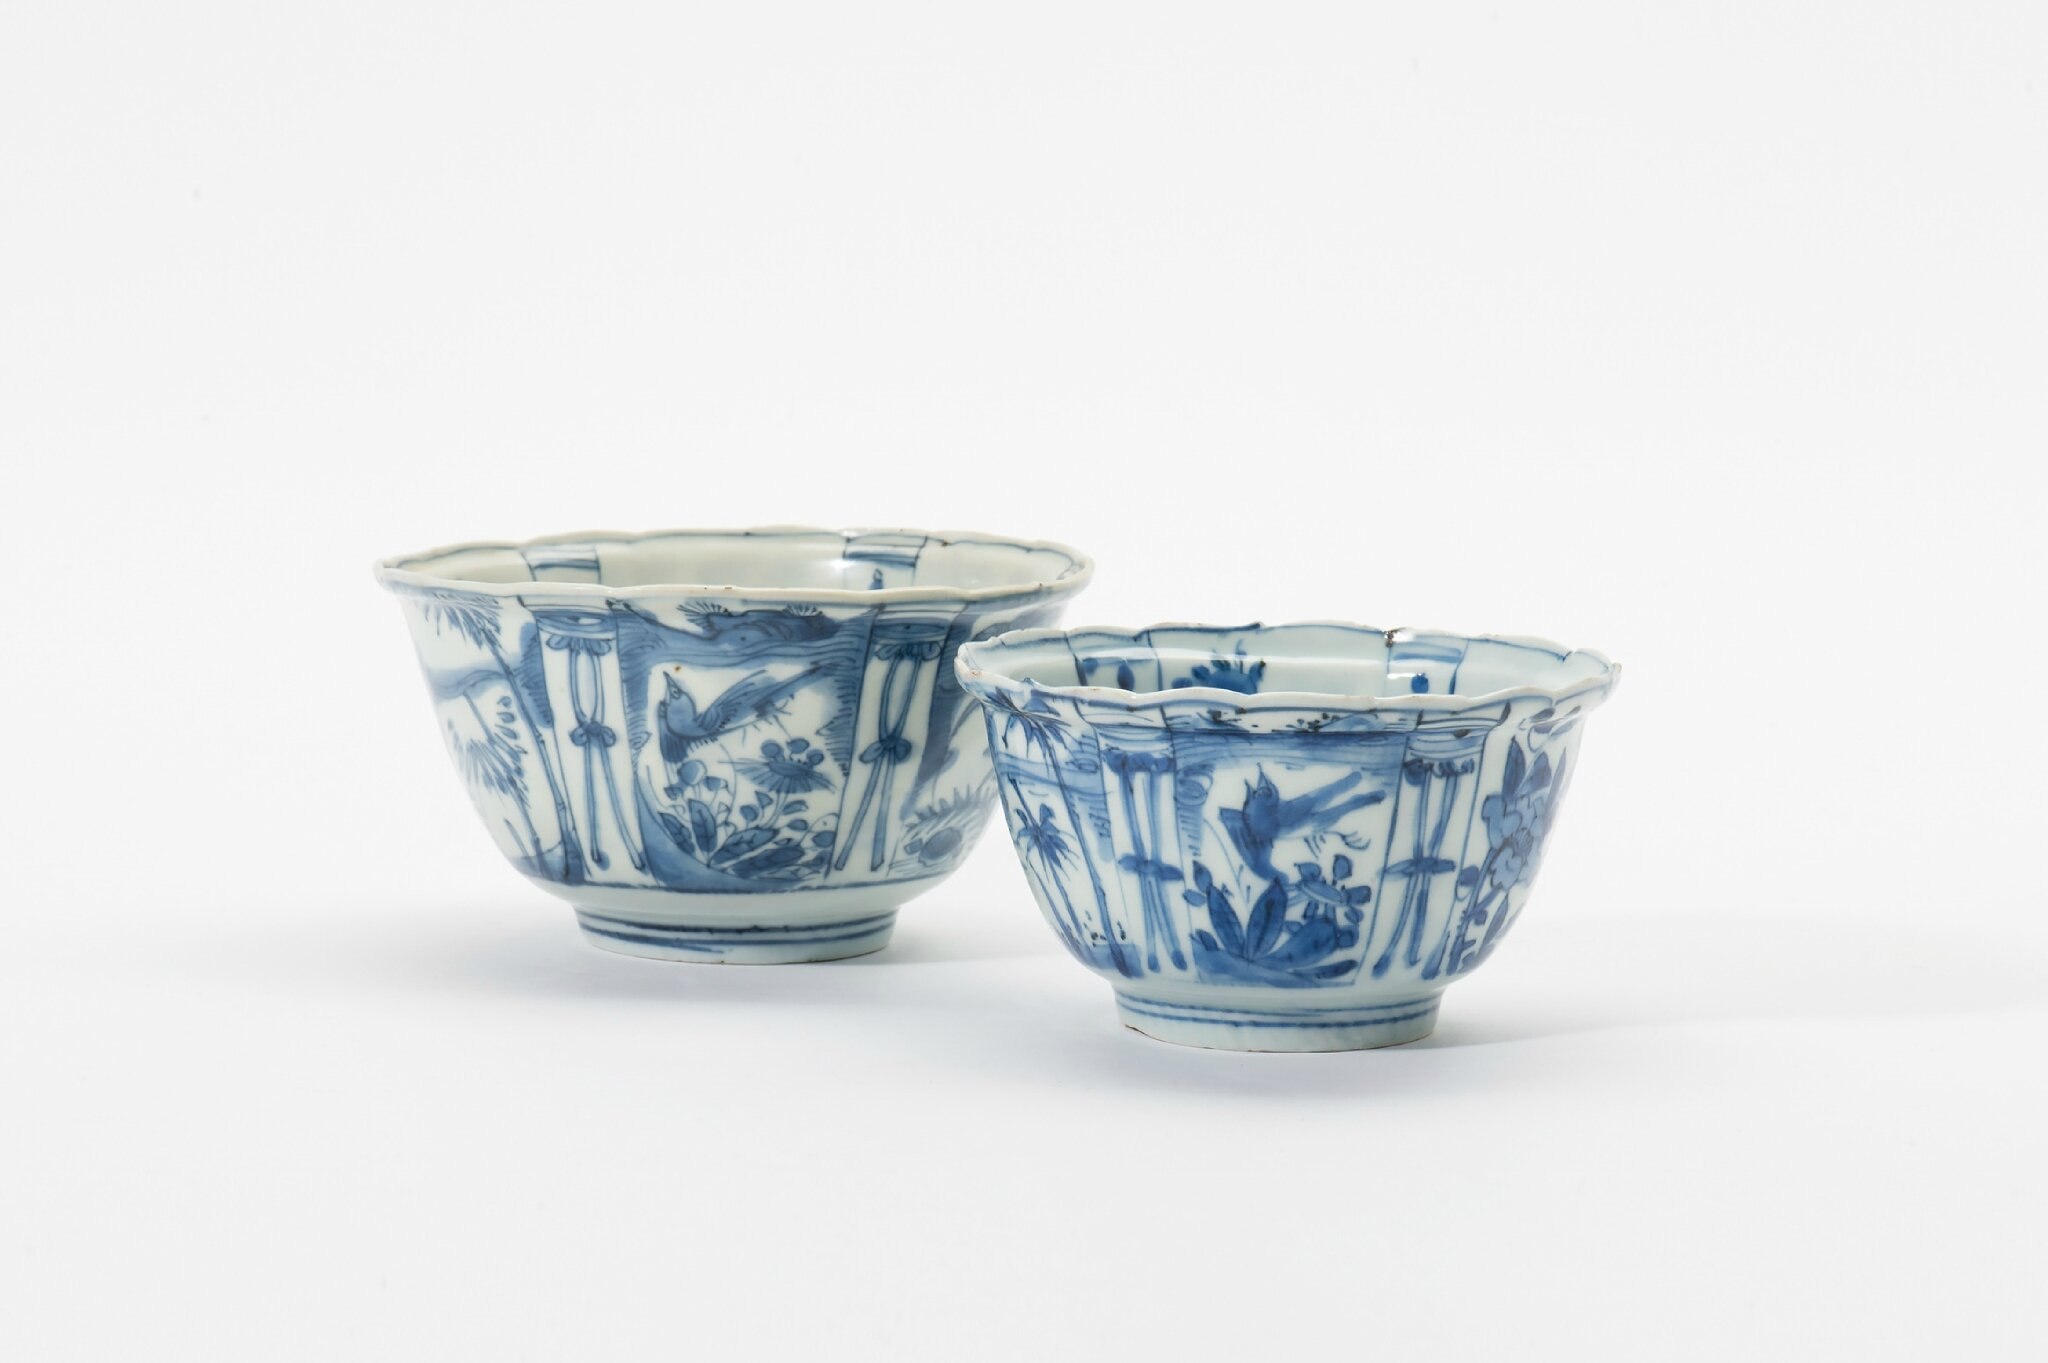 Two Kraak porcelain cups, Wanli period (1573-1619)